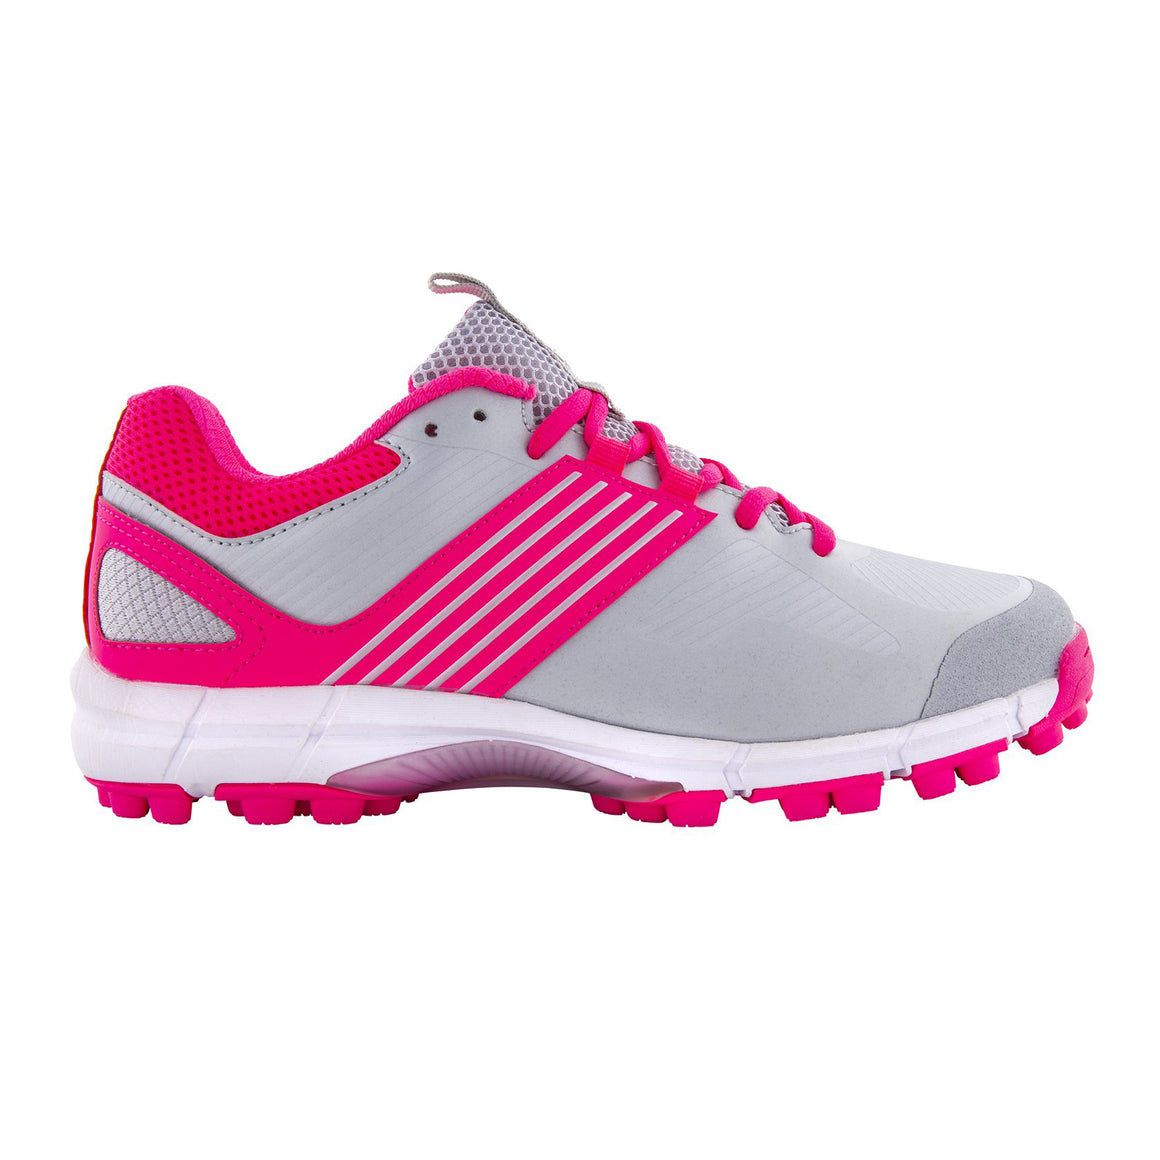 Jr Flash 2.0 Astros for Kids in Silver & Pink